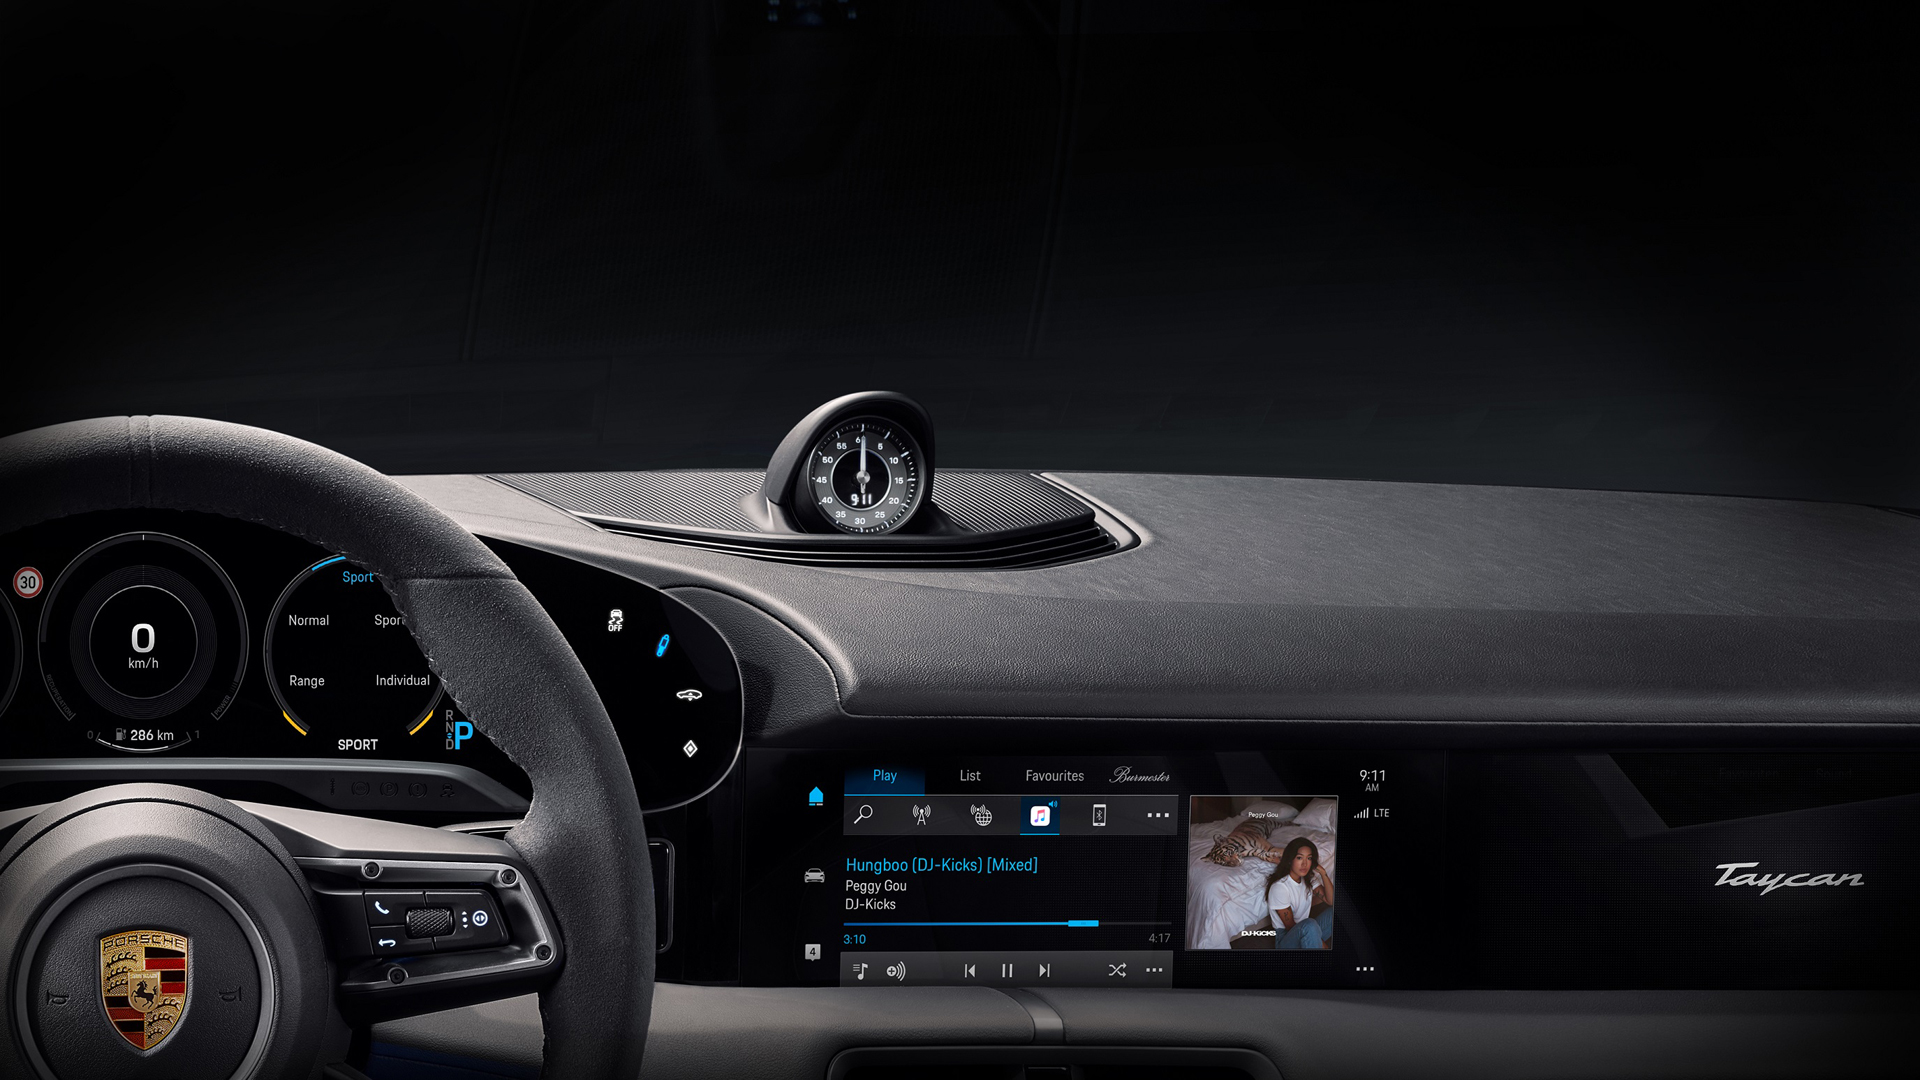 Porsche Taycan interior partially revealed, Apple Music comes standard